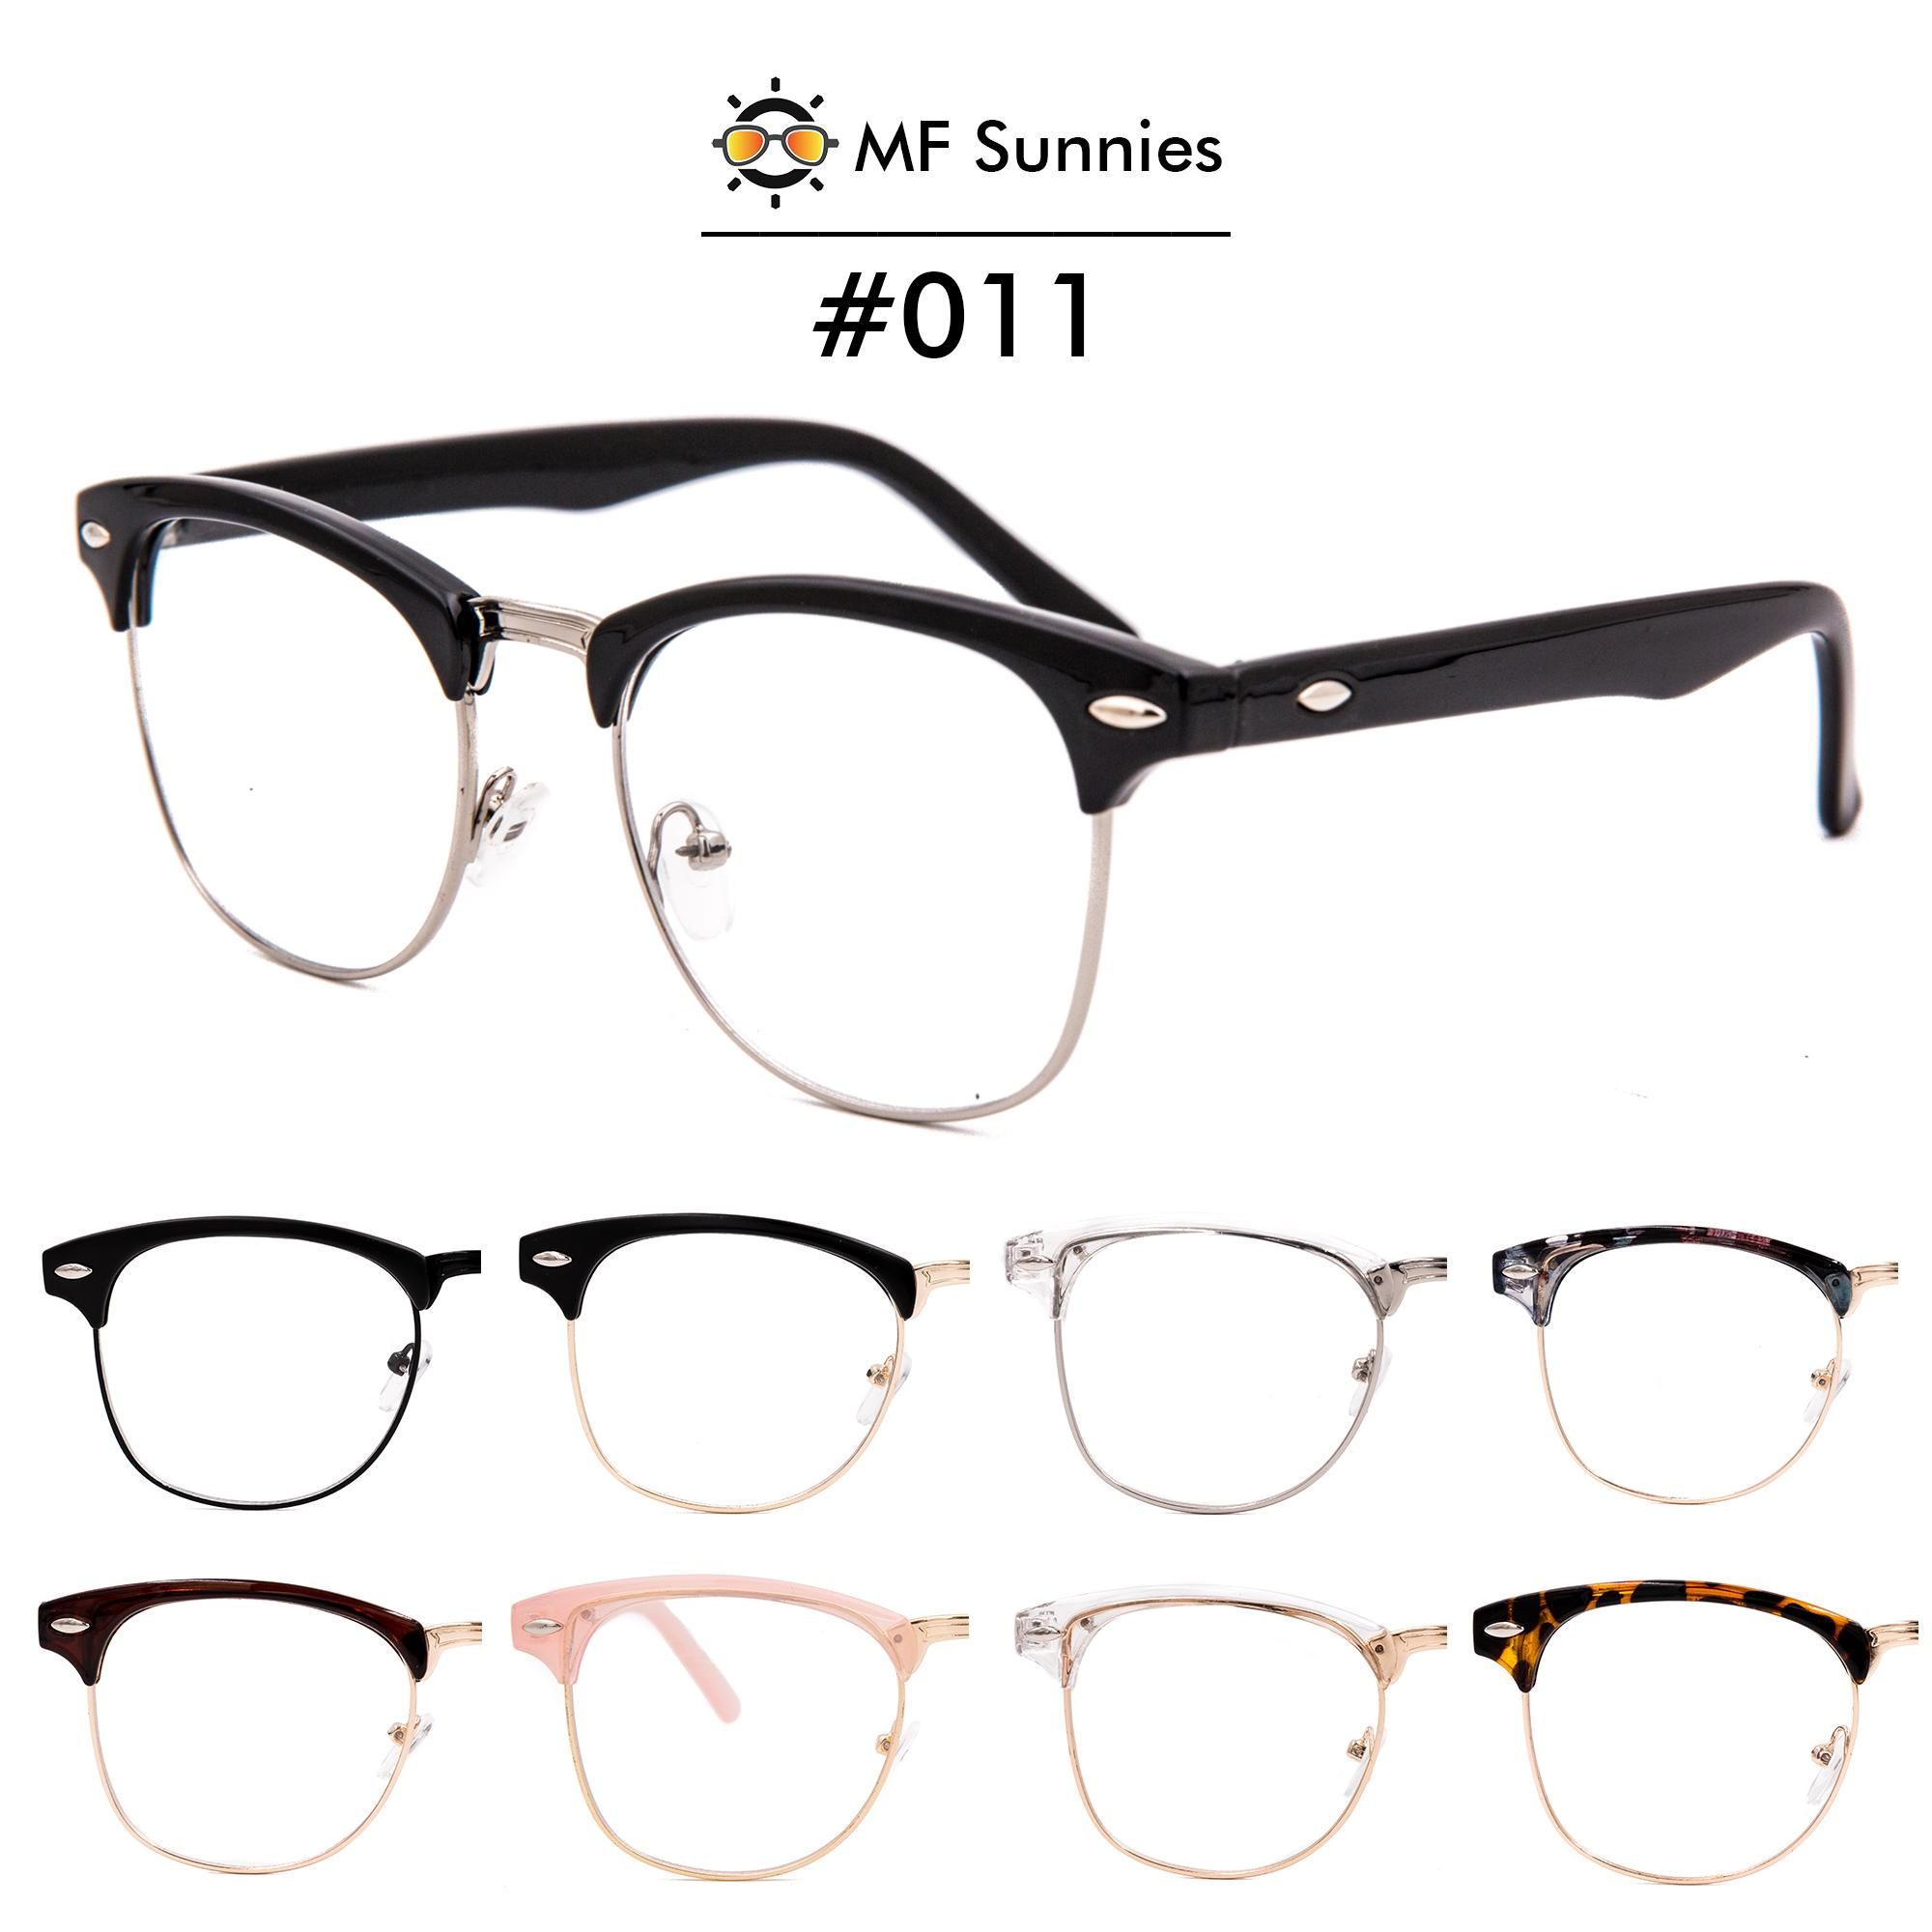 7d5c2830b4d7 Eyeglasses for sale - Reading Glasses online brands